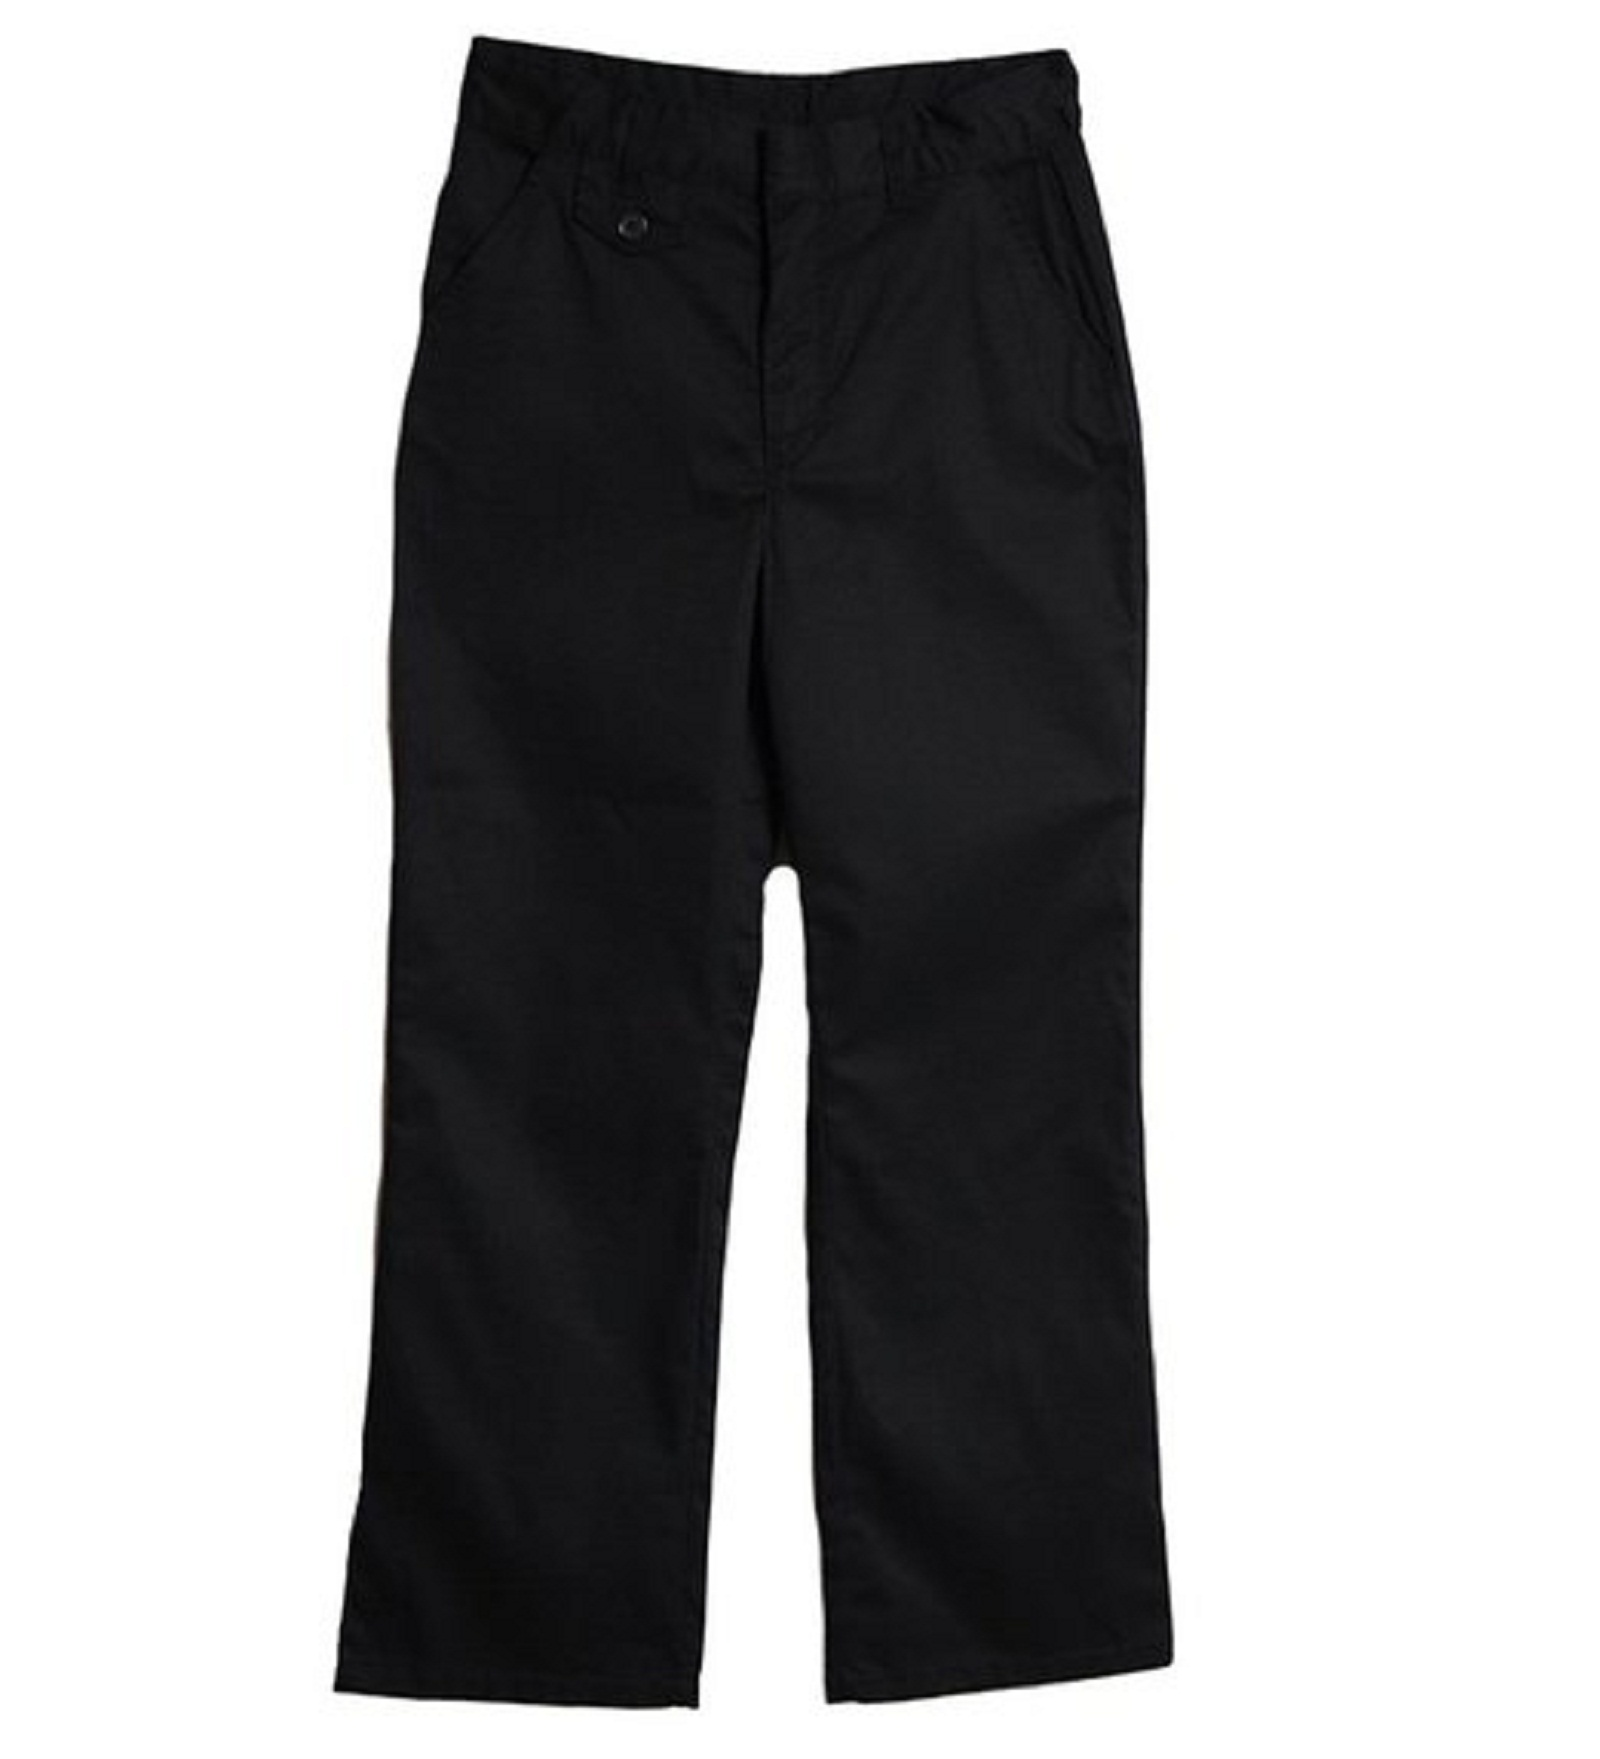 Genuine School Uniform Girls 7-16 Straight Leg Flat Front Pants, Girl's, Size: 14, Black 049V009150537000